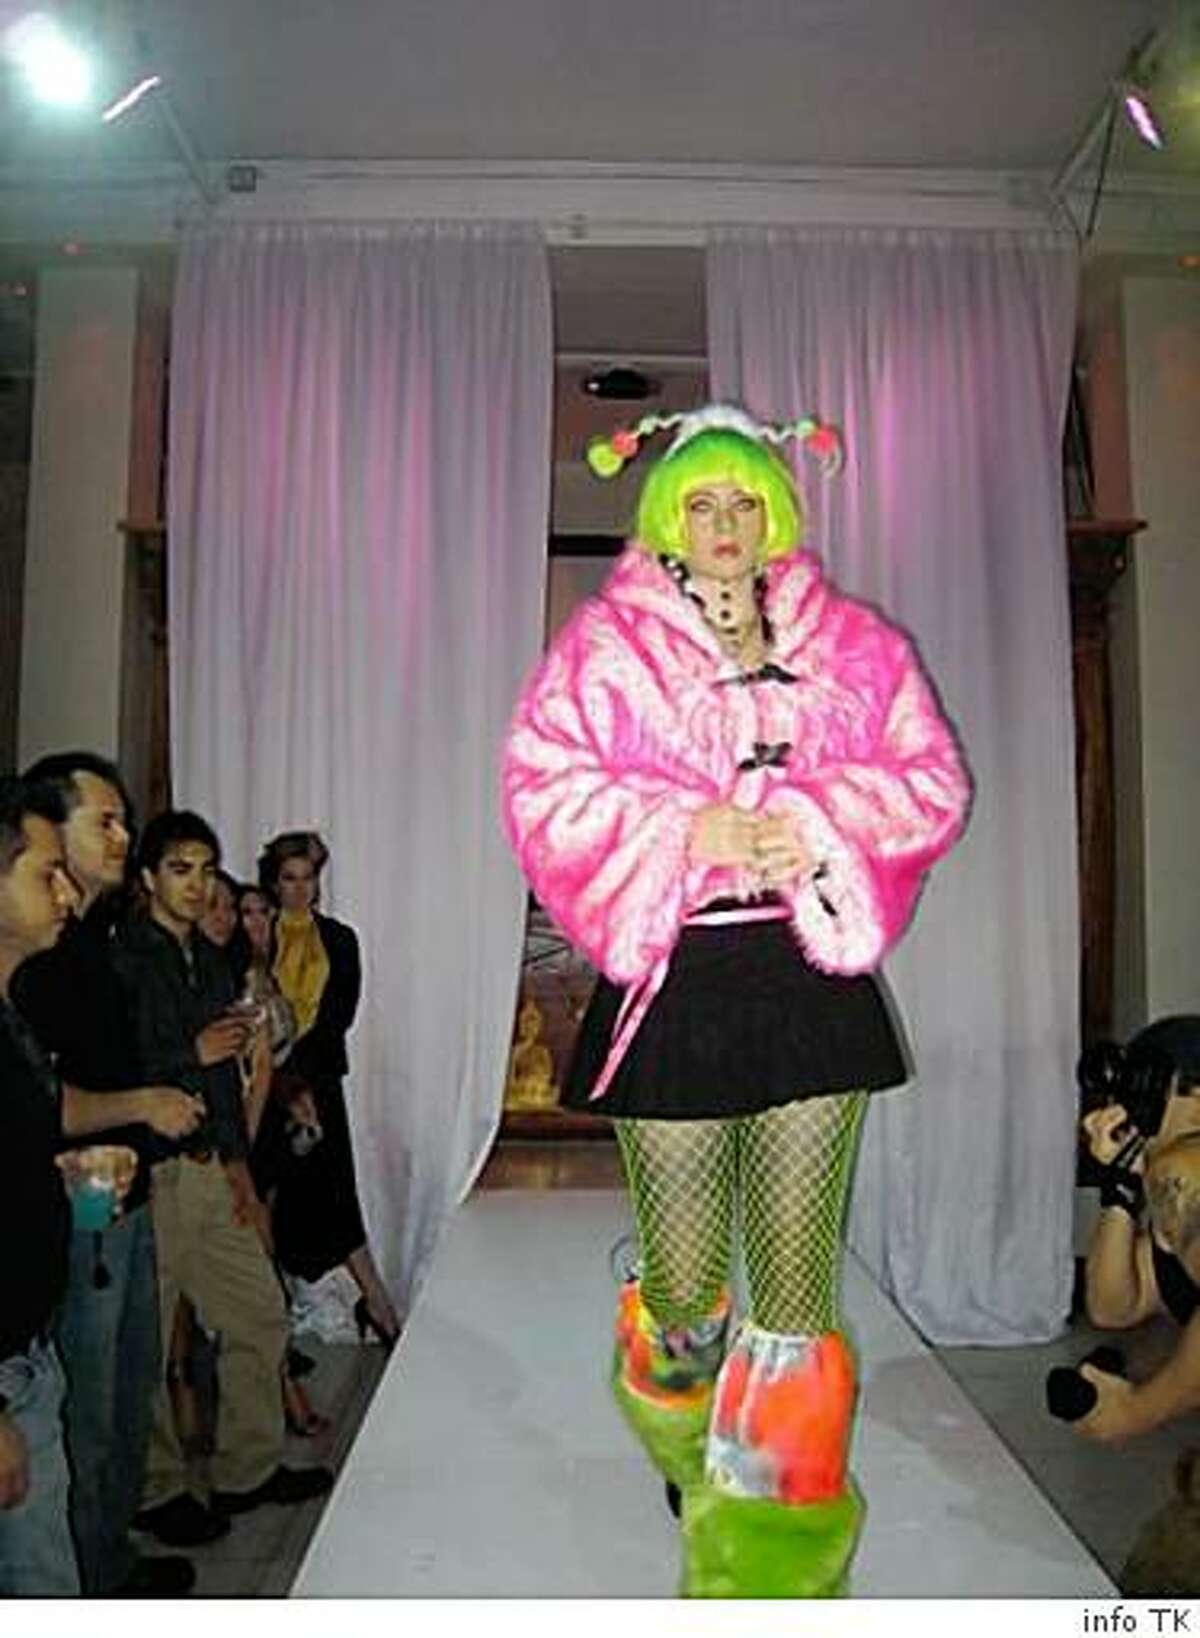 These images are from a 2007 fashion show held in San Francisco in advance of the Burning Man event. Location, more detailed info TK from anastasia and writer.